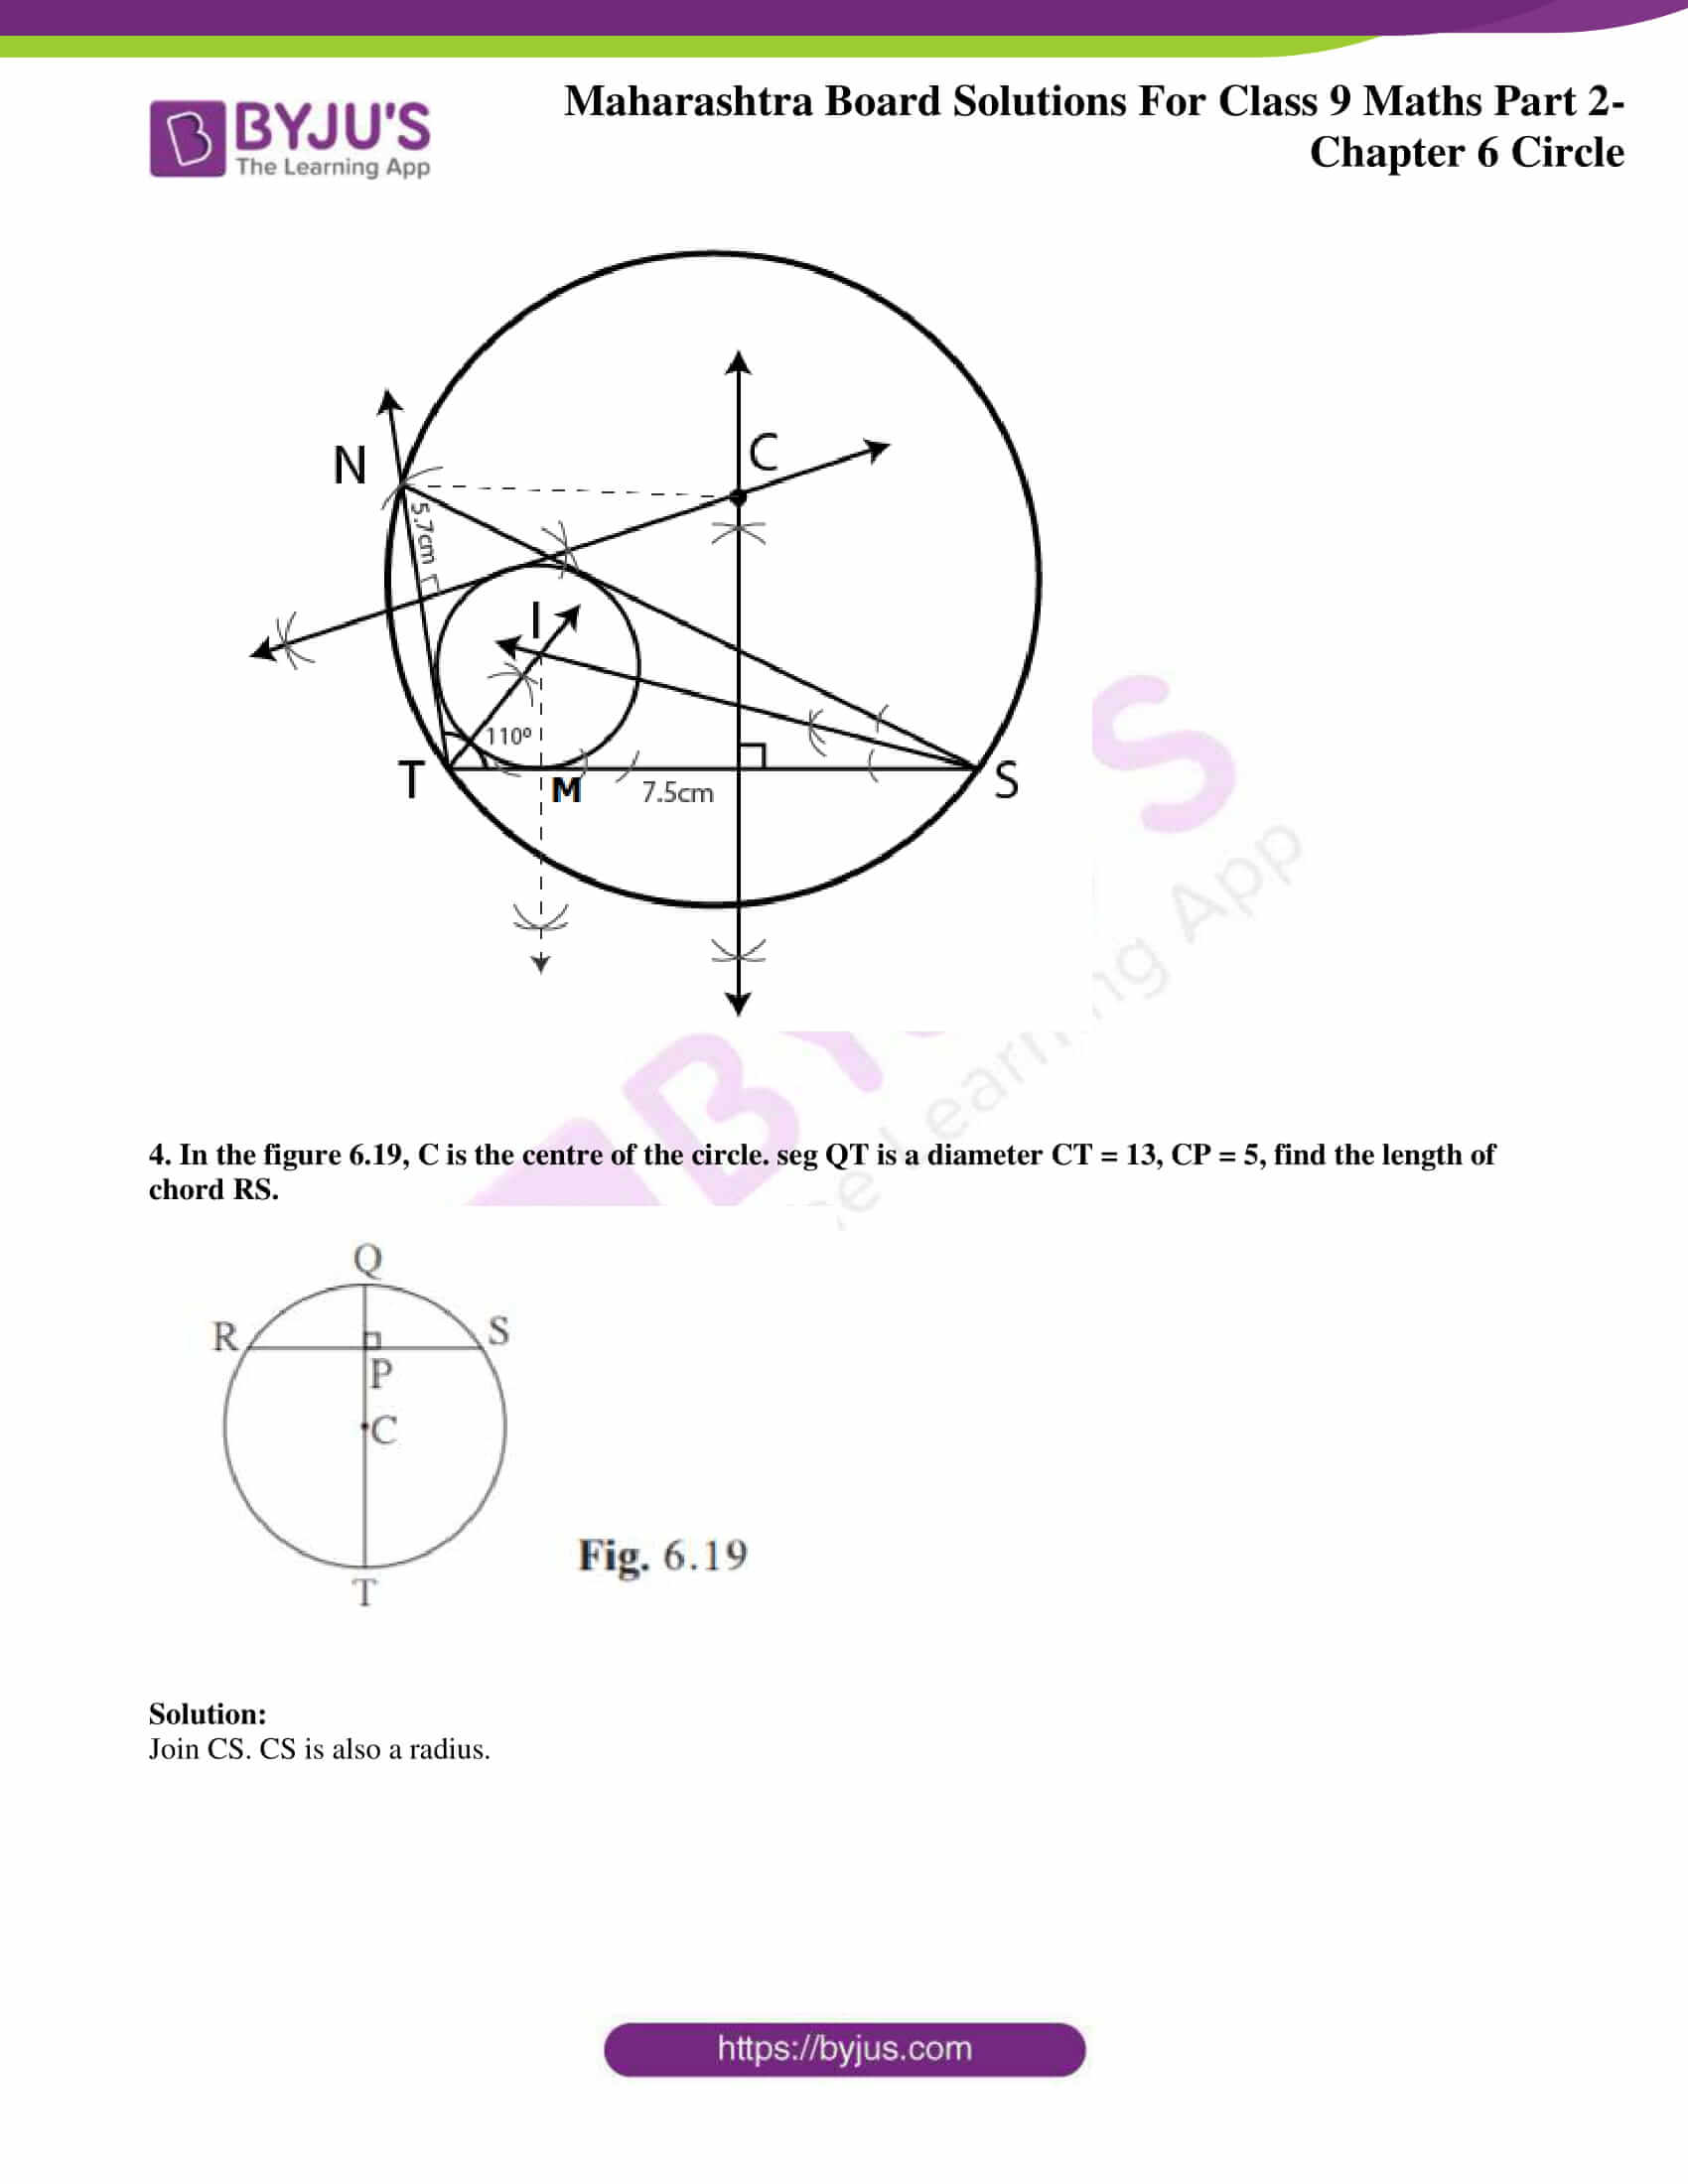 msbshse solutions for class 9 maths part 2 chapter 6 26